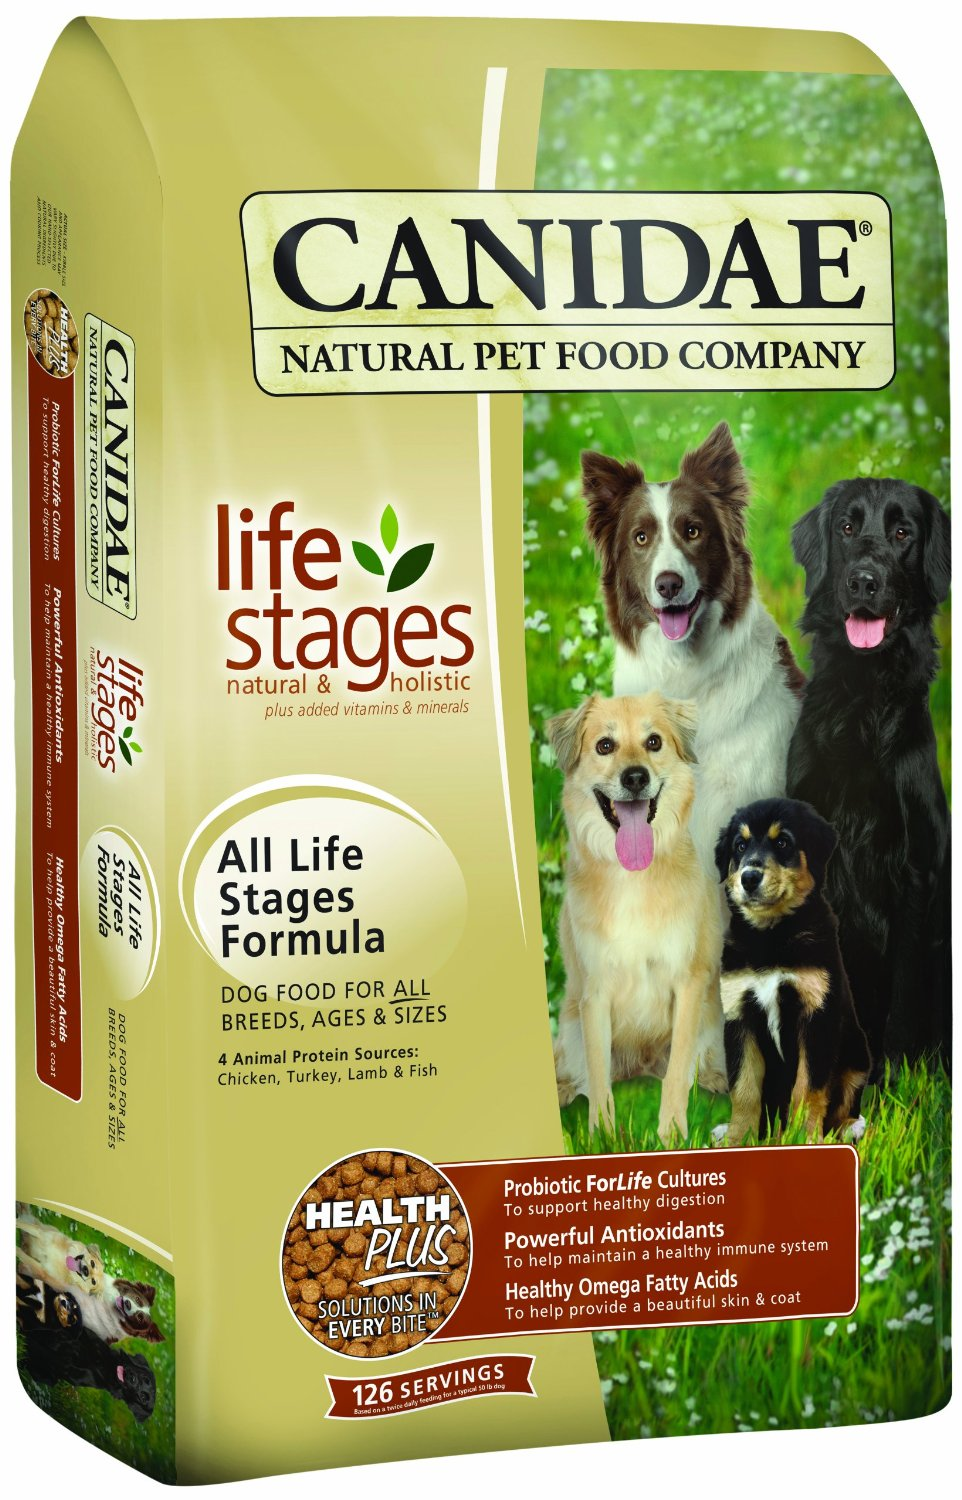 Canidae Skin & Coat Dog Food